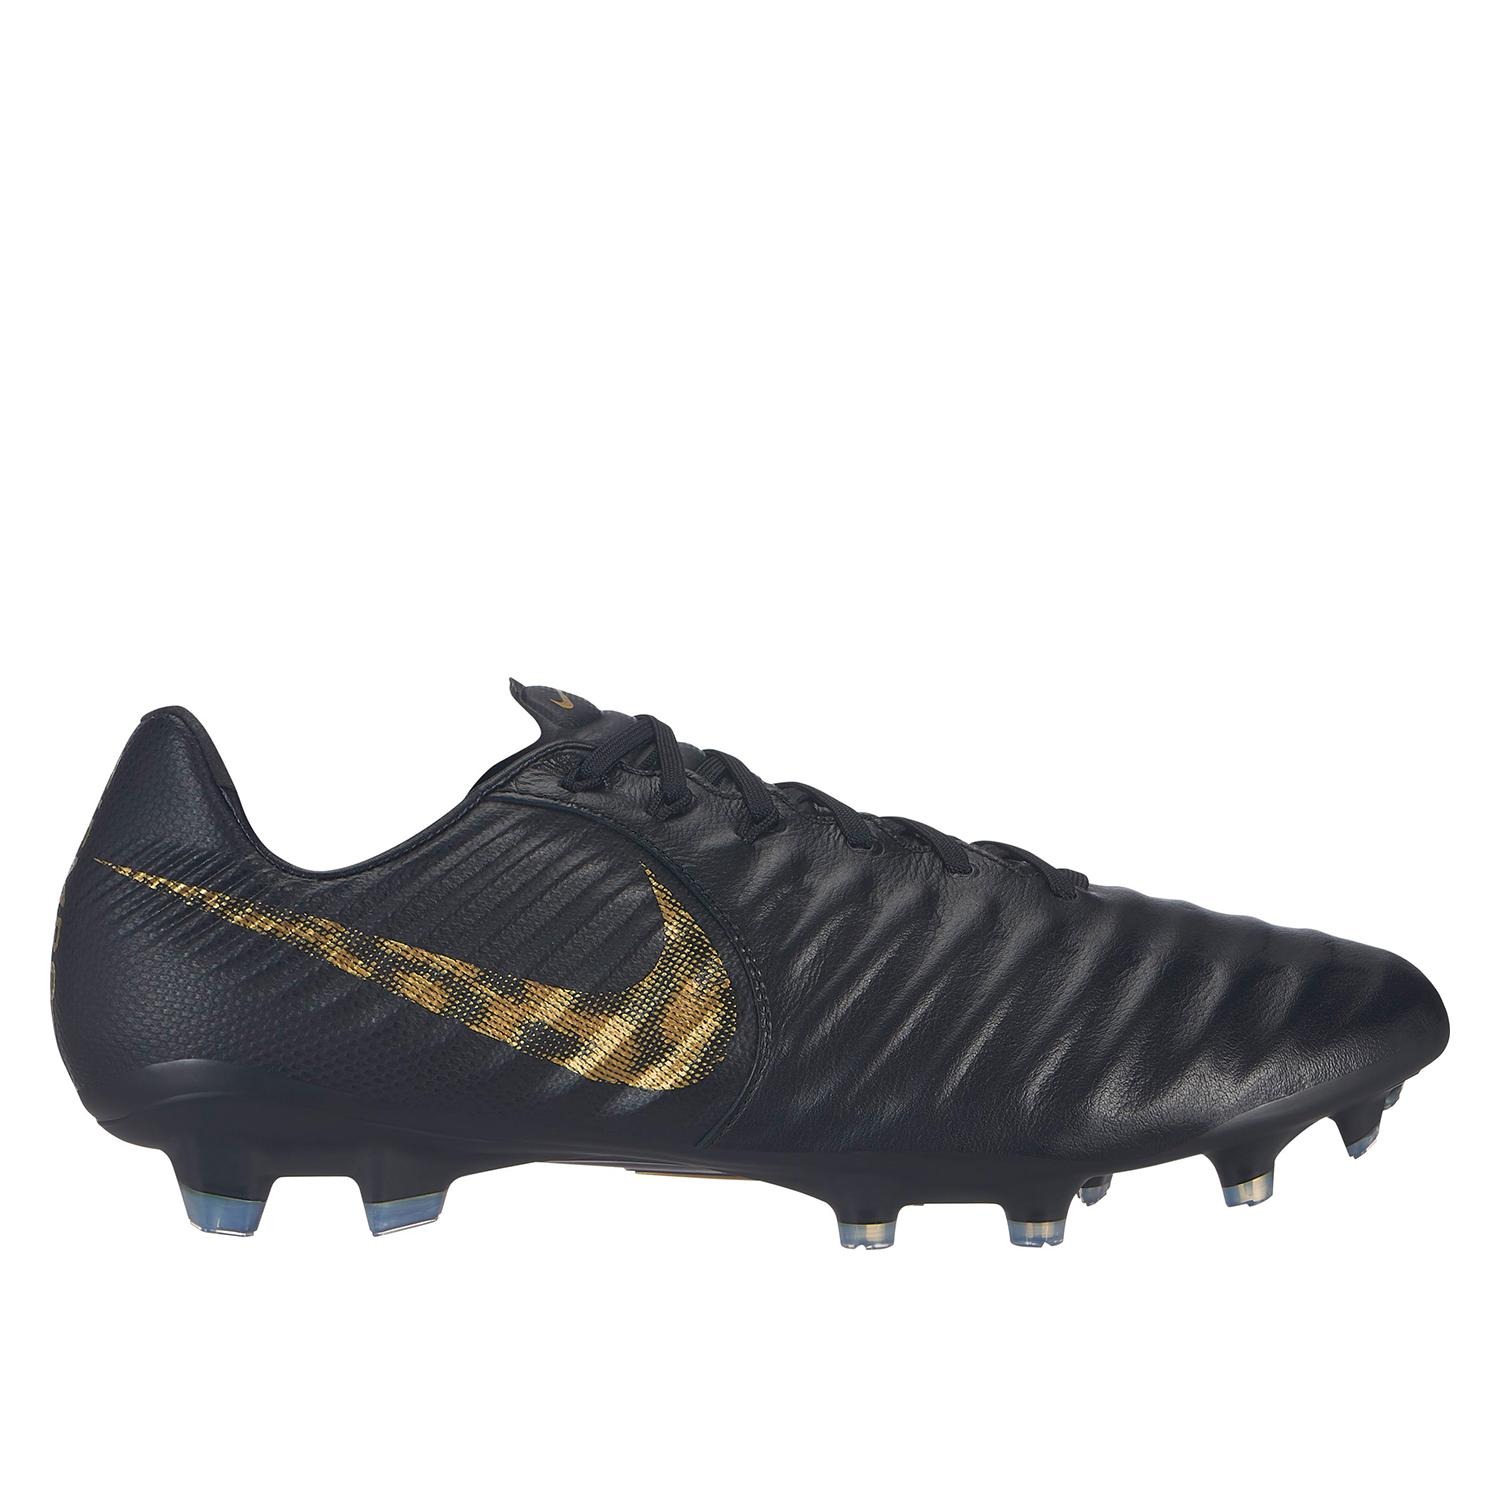 39d3410fe90 Nike Tiempo Legend 7 Pro Firm Ground Men s Football Boot in Black ...